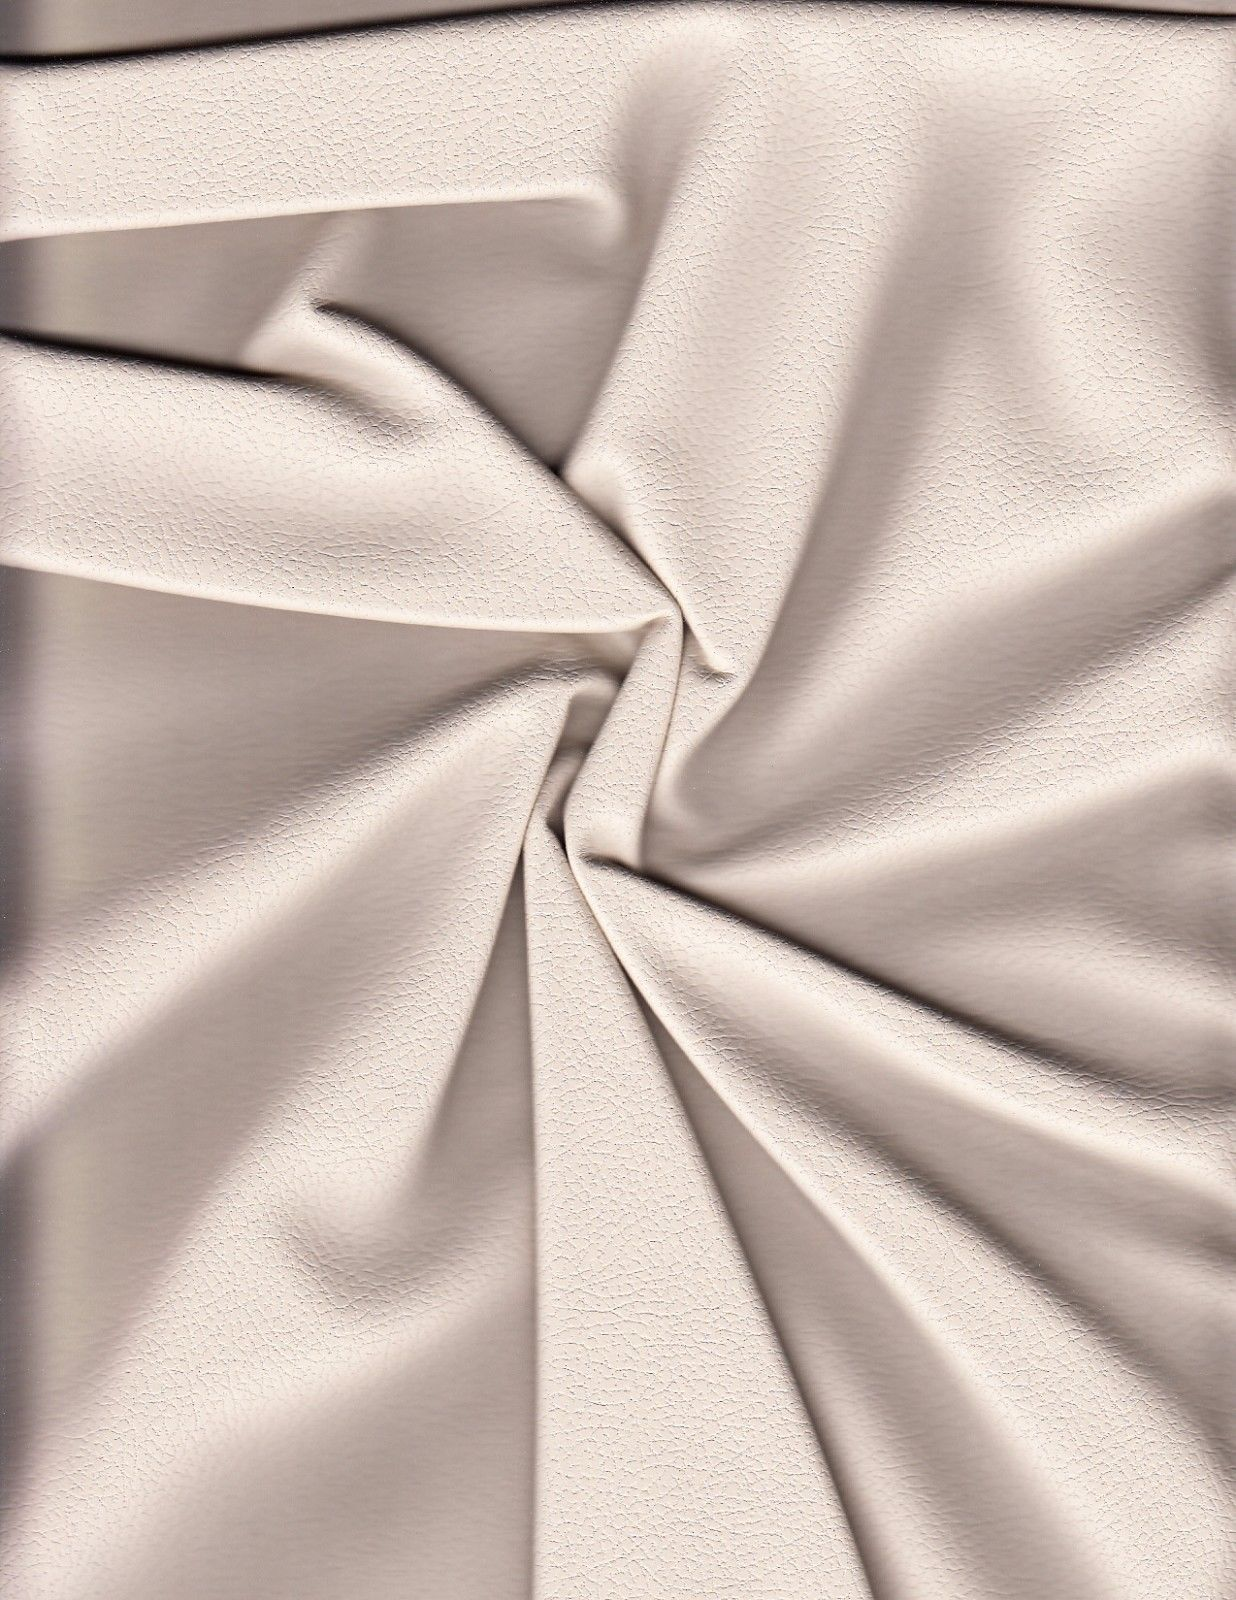 2.375 yds Ultrafabrics Upholstery Fabric Faux Leather 303-3822 Brisa Bone HL10